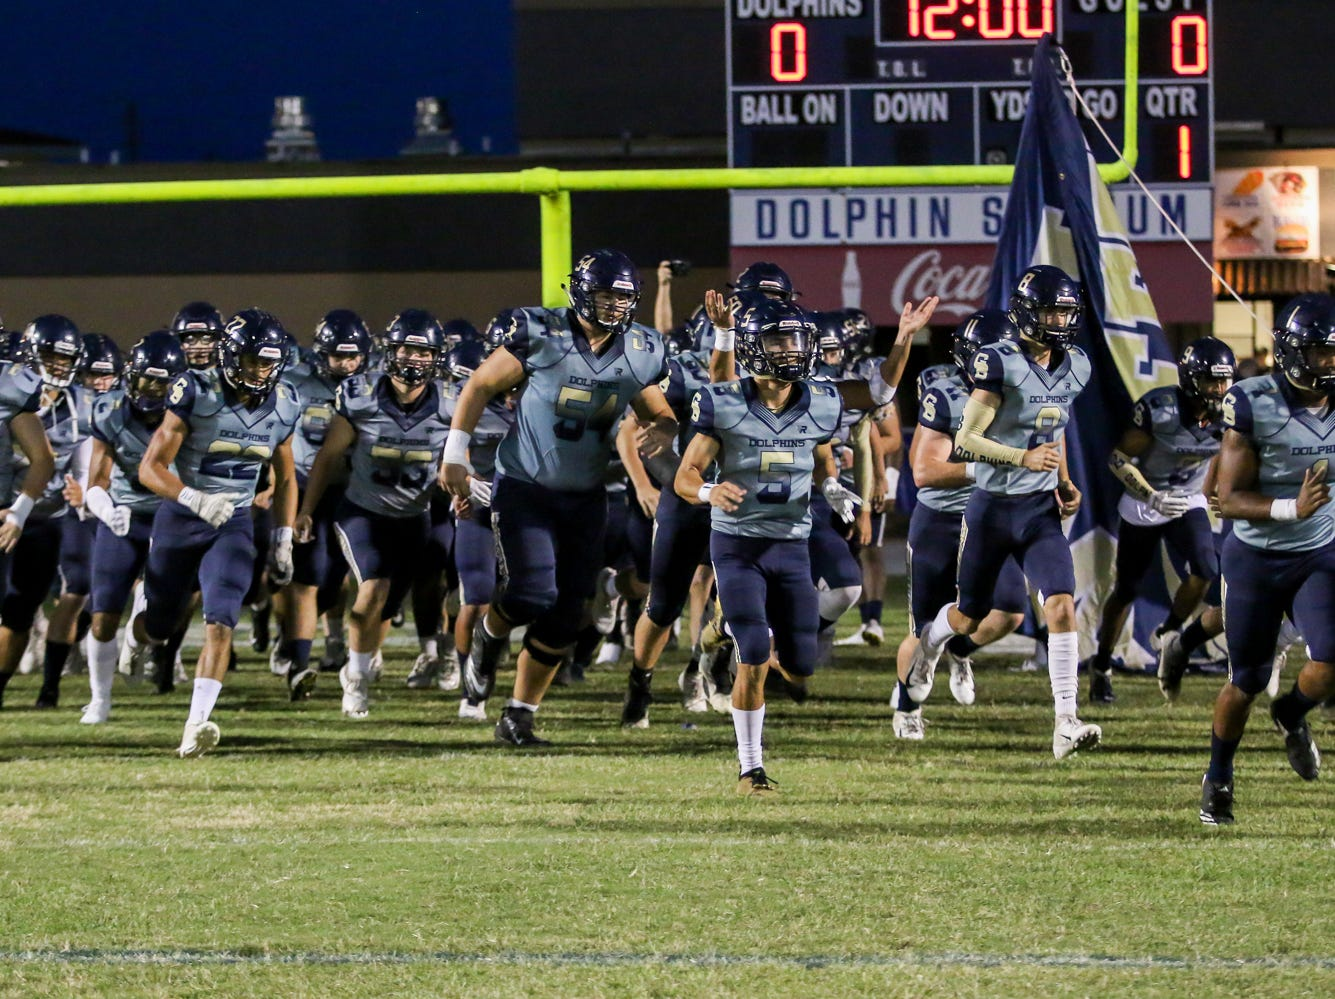 The Gulf Breeze Dolphins take the field against the Milton Panthers before the District 2-6A game at Gulf Breeze High School on Friday.